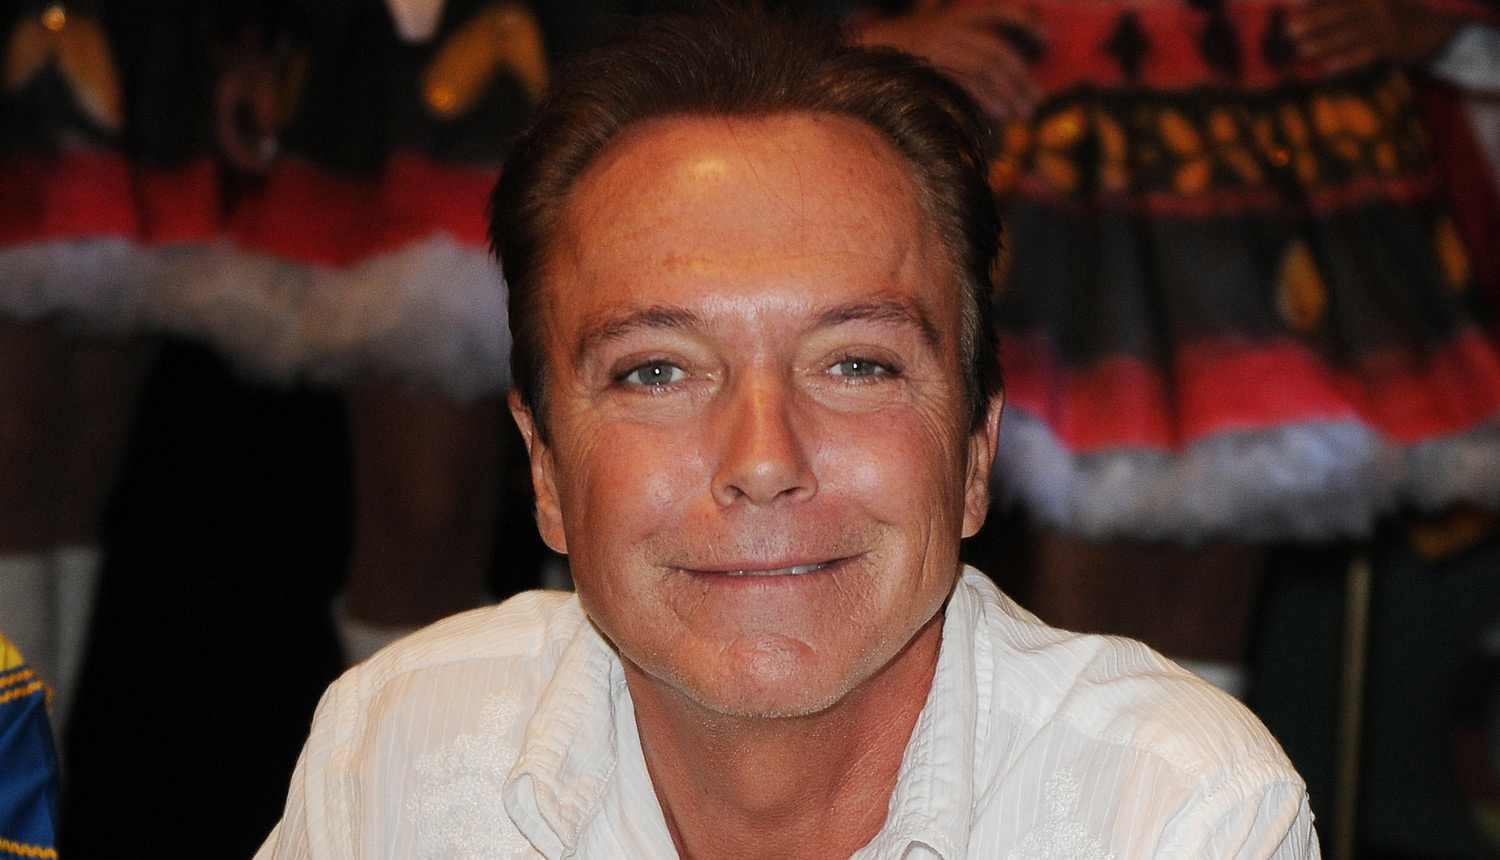 Photo of Former Teen Heartthrob David Cassidy Dies. He was 67